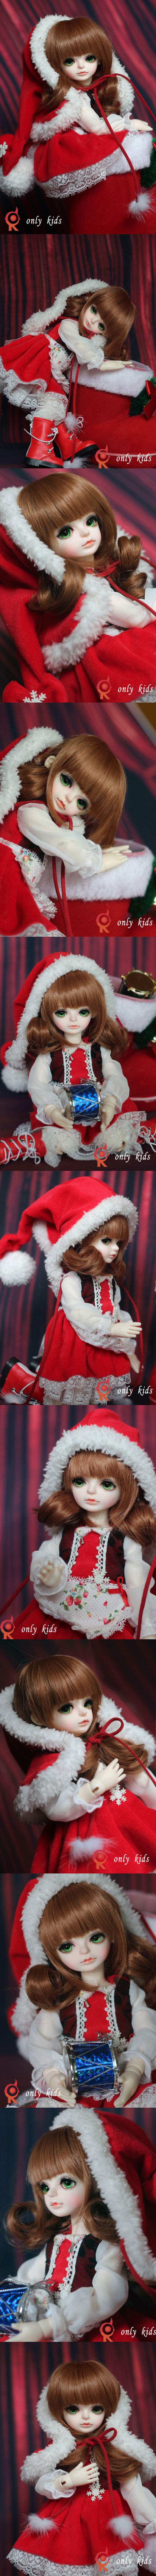 BJD pinecone Girl 27cm Boll-jointed doll